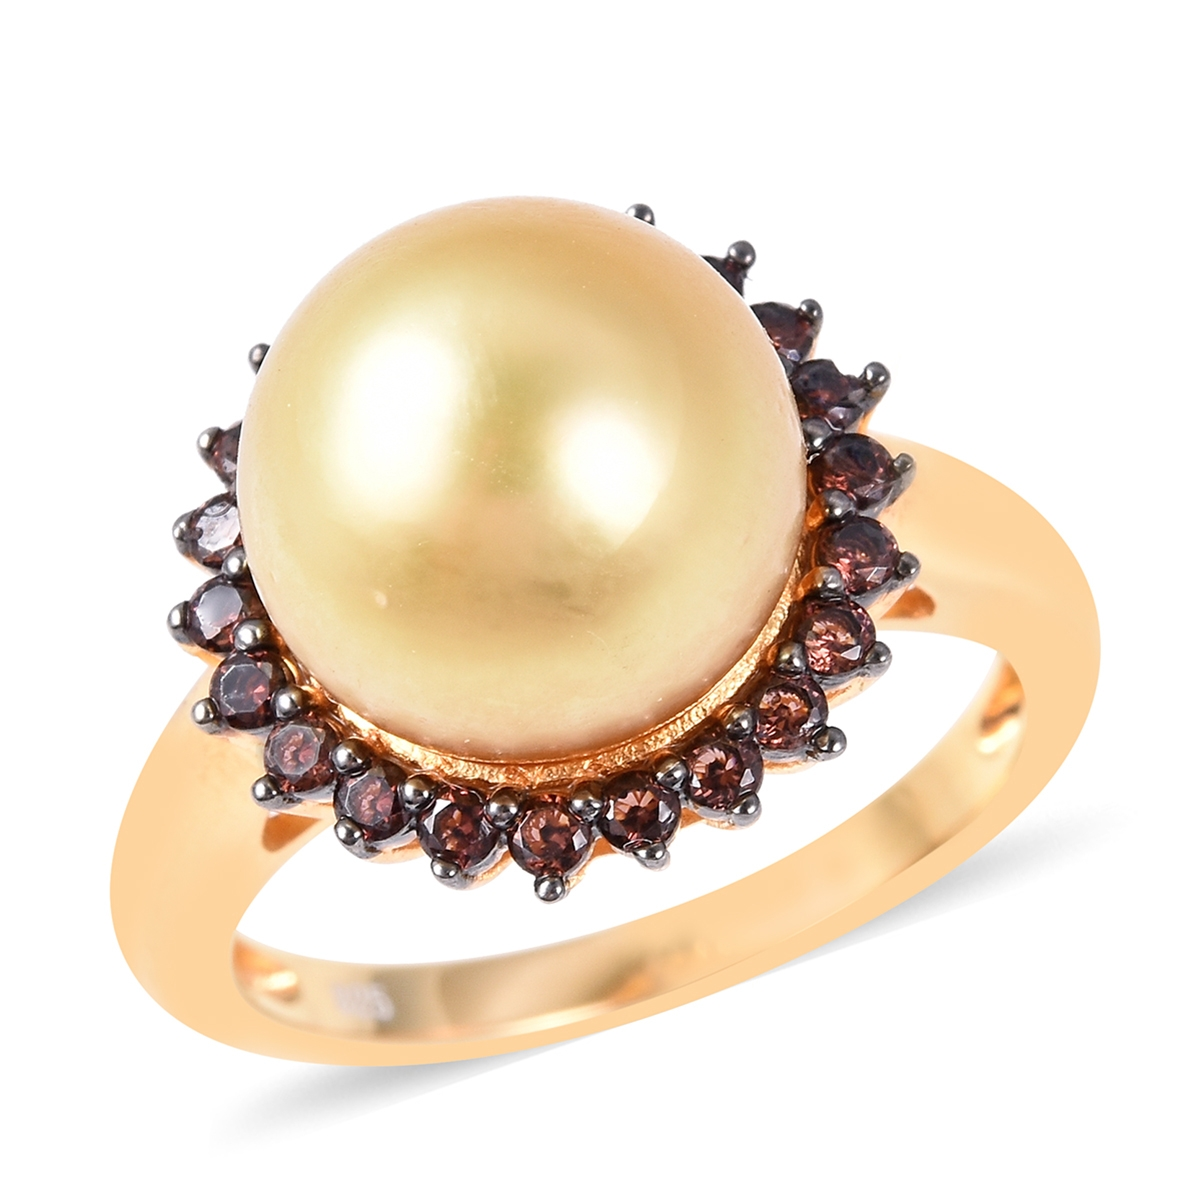 South Sea Golden Cultured Pearl 12 mm, Coffee Zircon Ring in Vermeil YG Over Sterling Silver (Size 6.0) 1.00 ctw